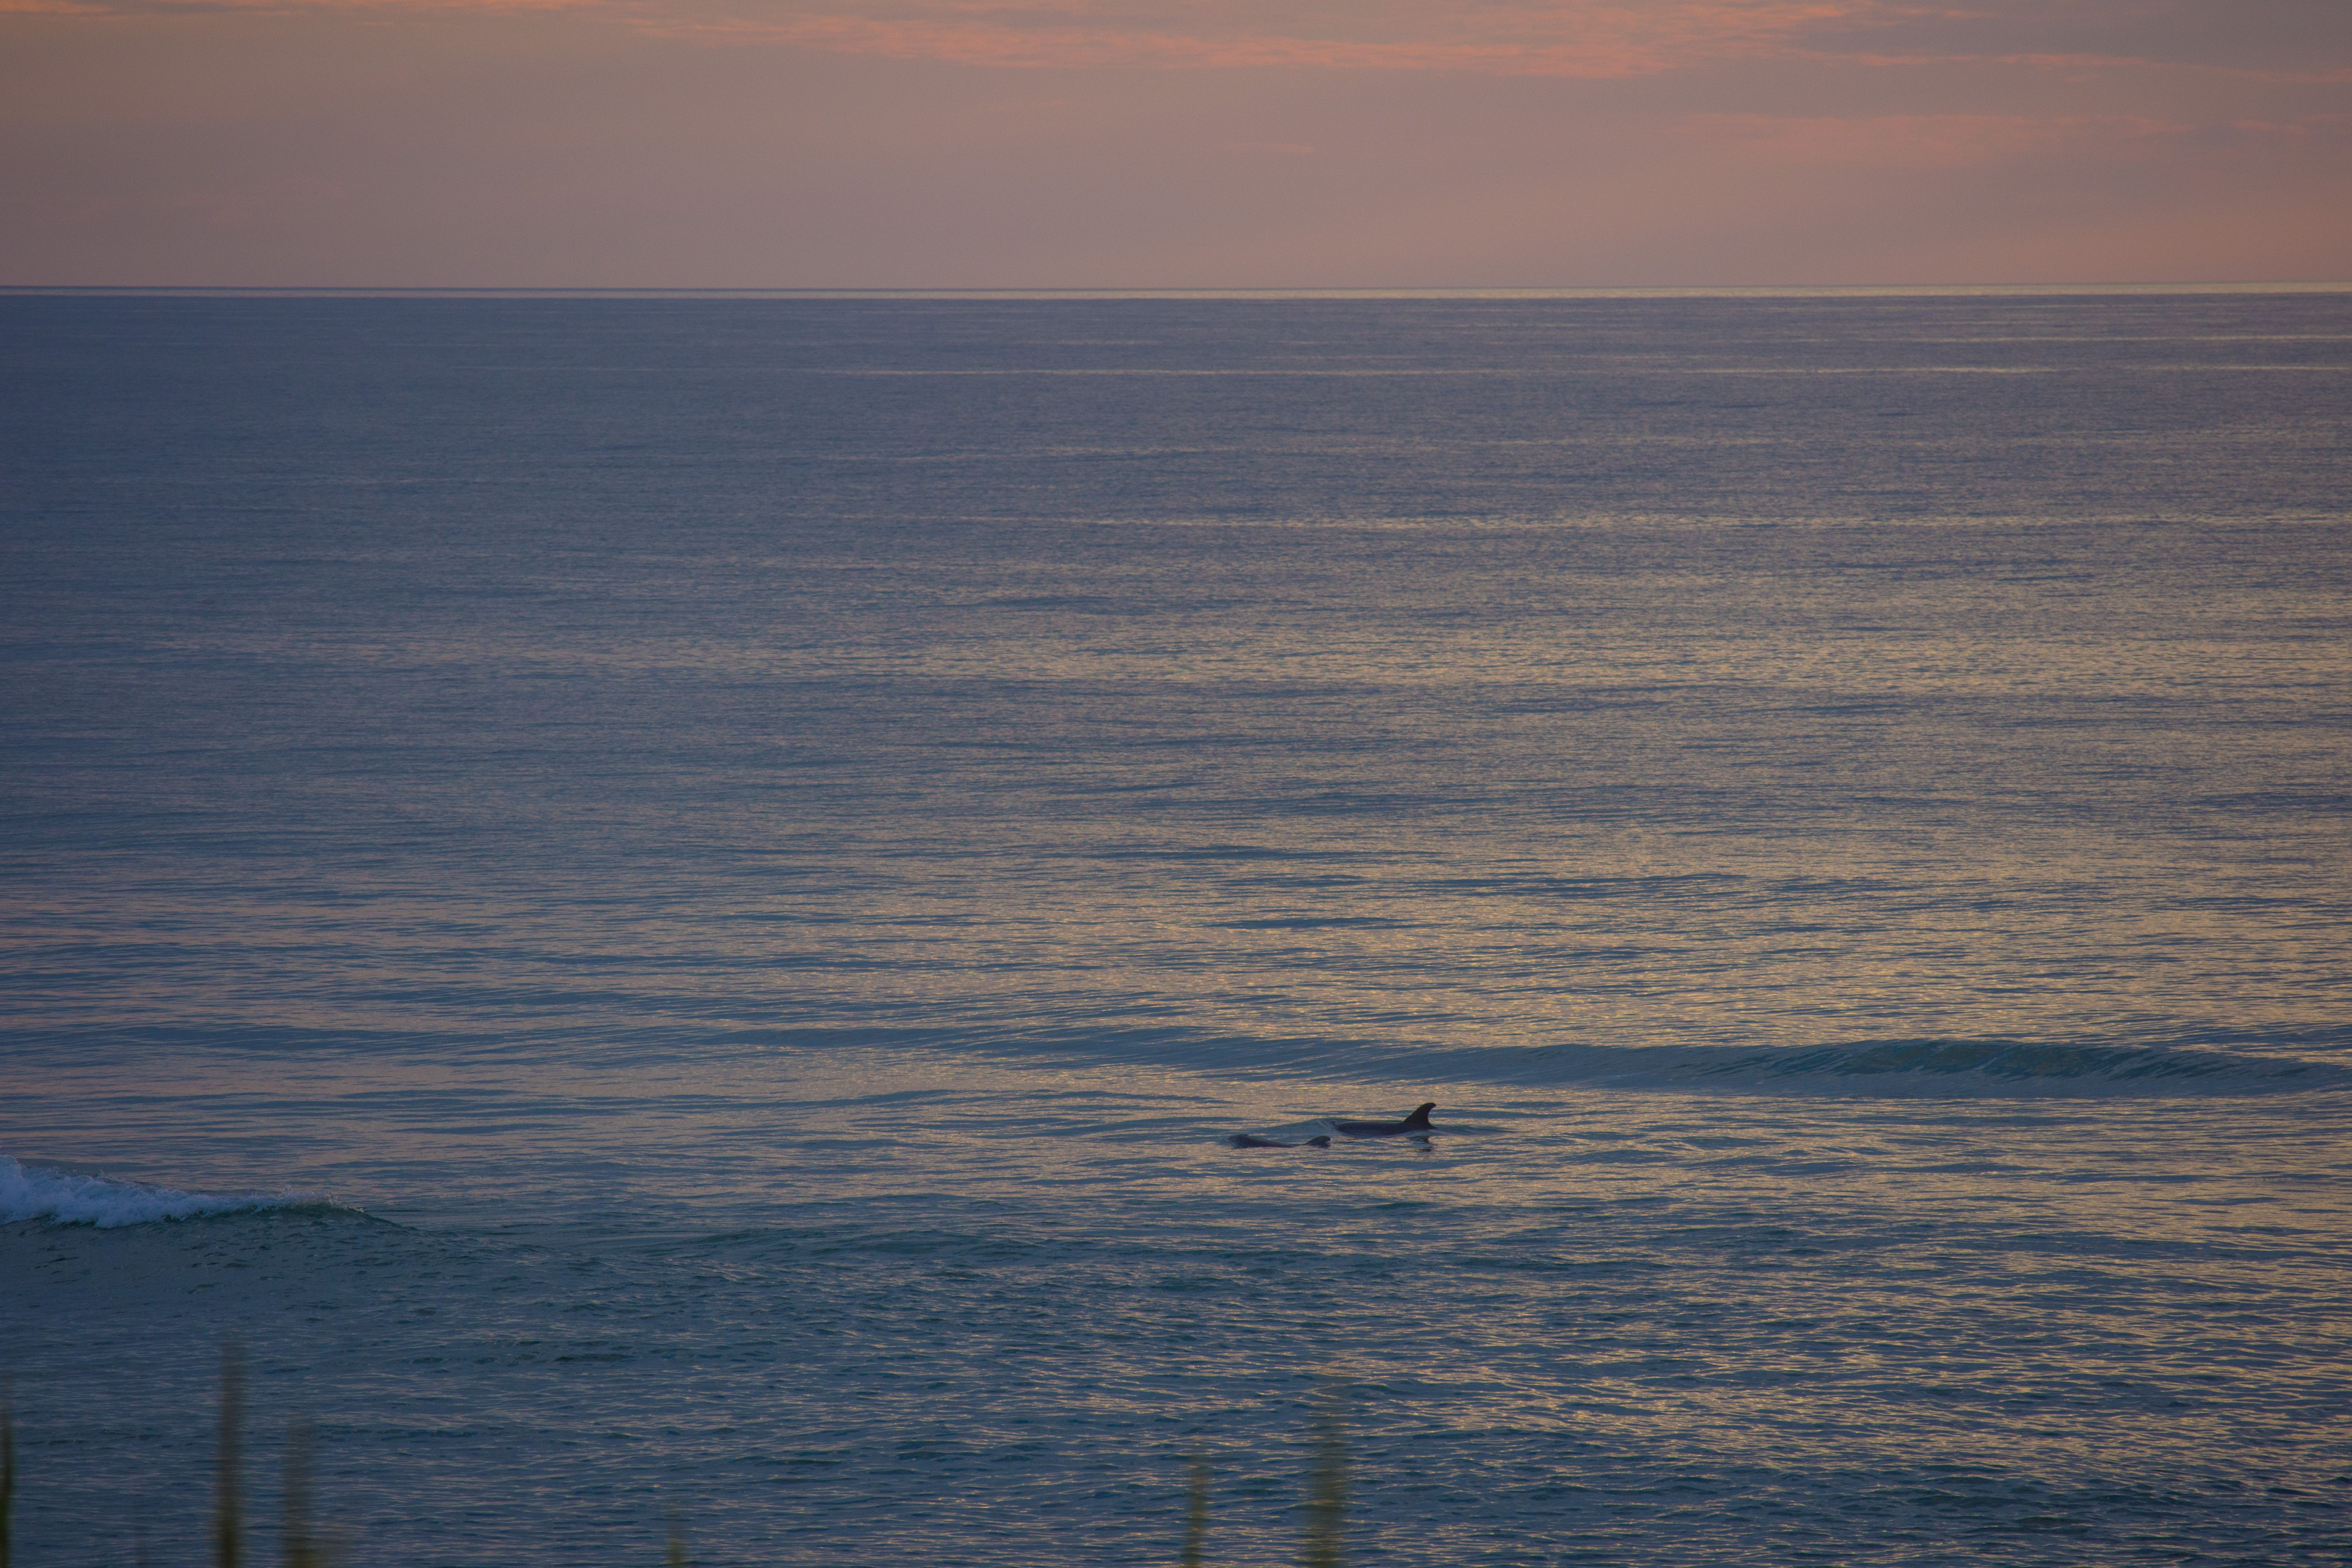 Kill devil hills dolphins at sunrise outer banks photo